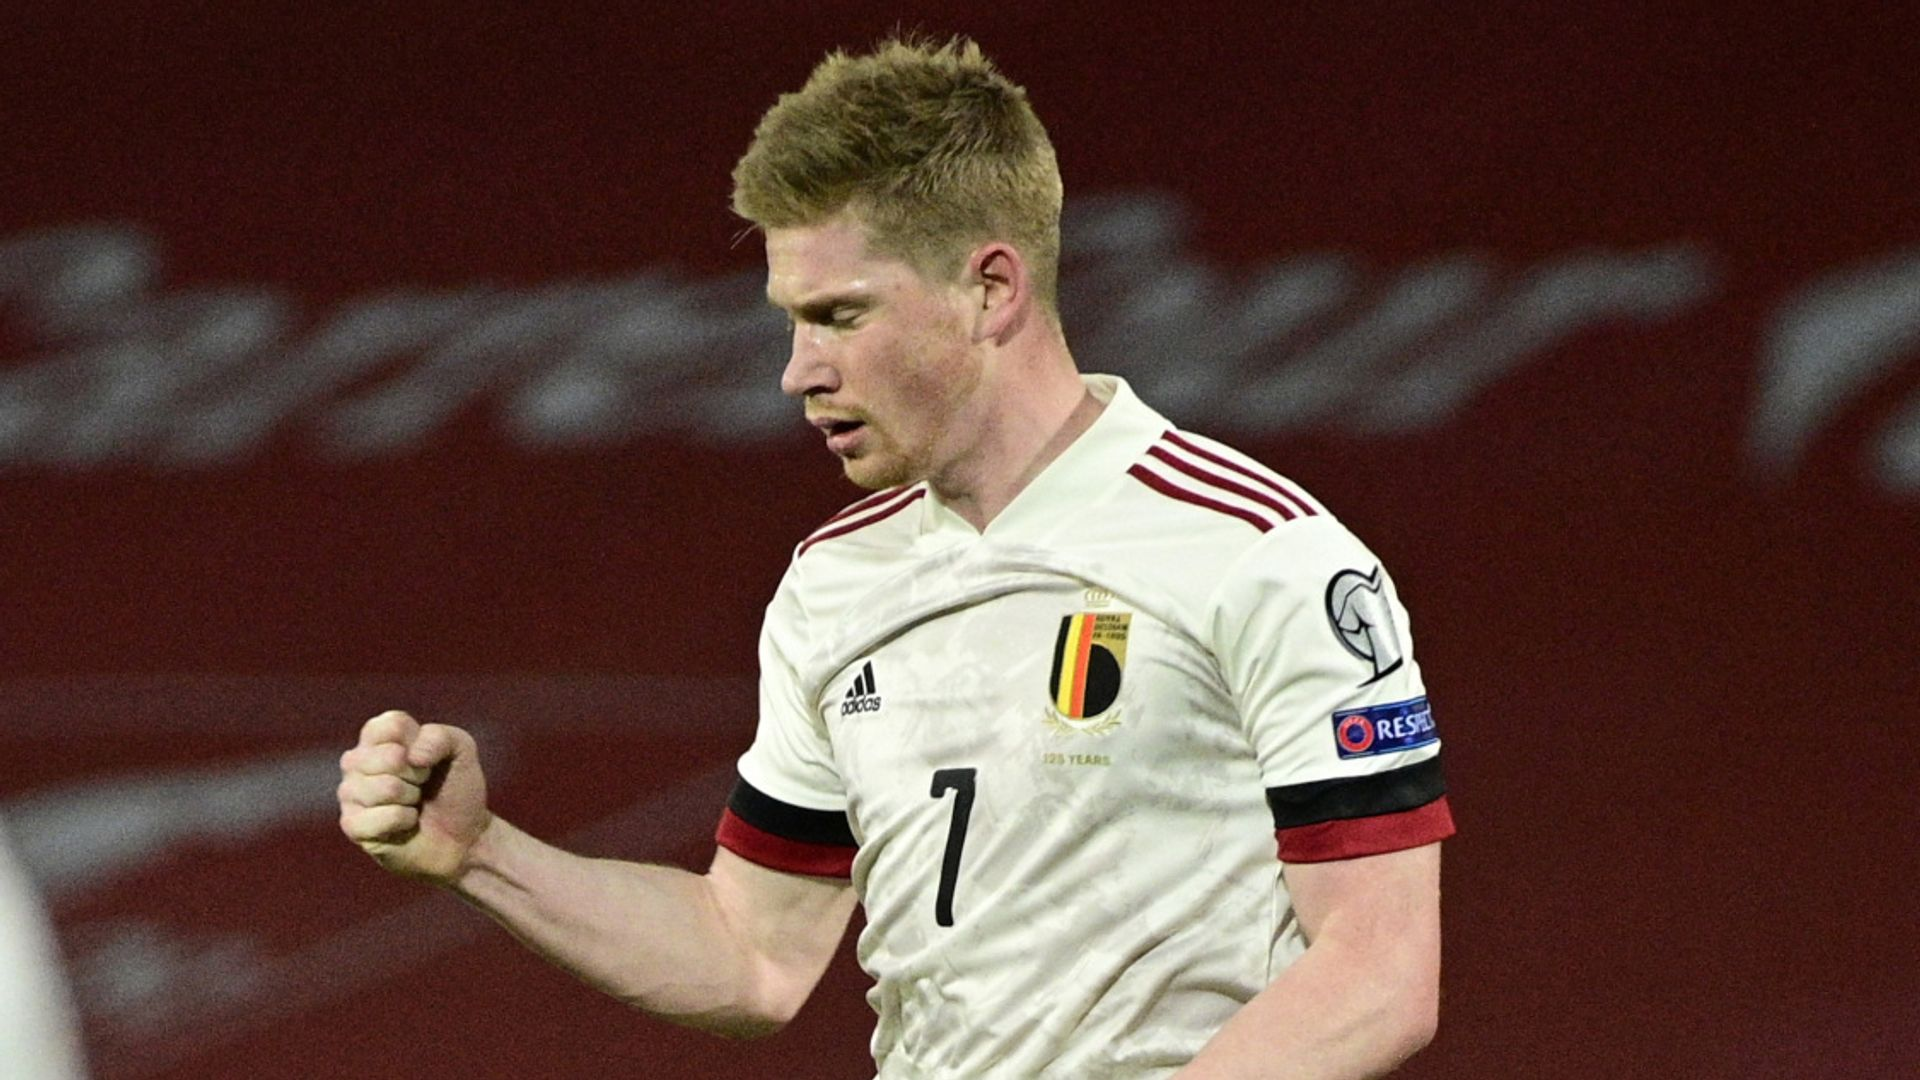 Euro 2020 squads - who's been selected?